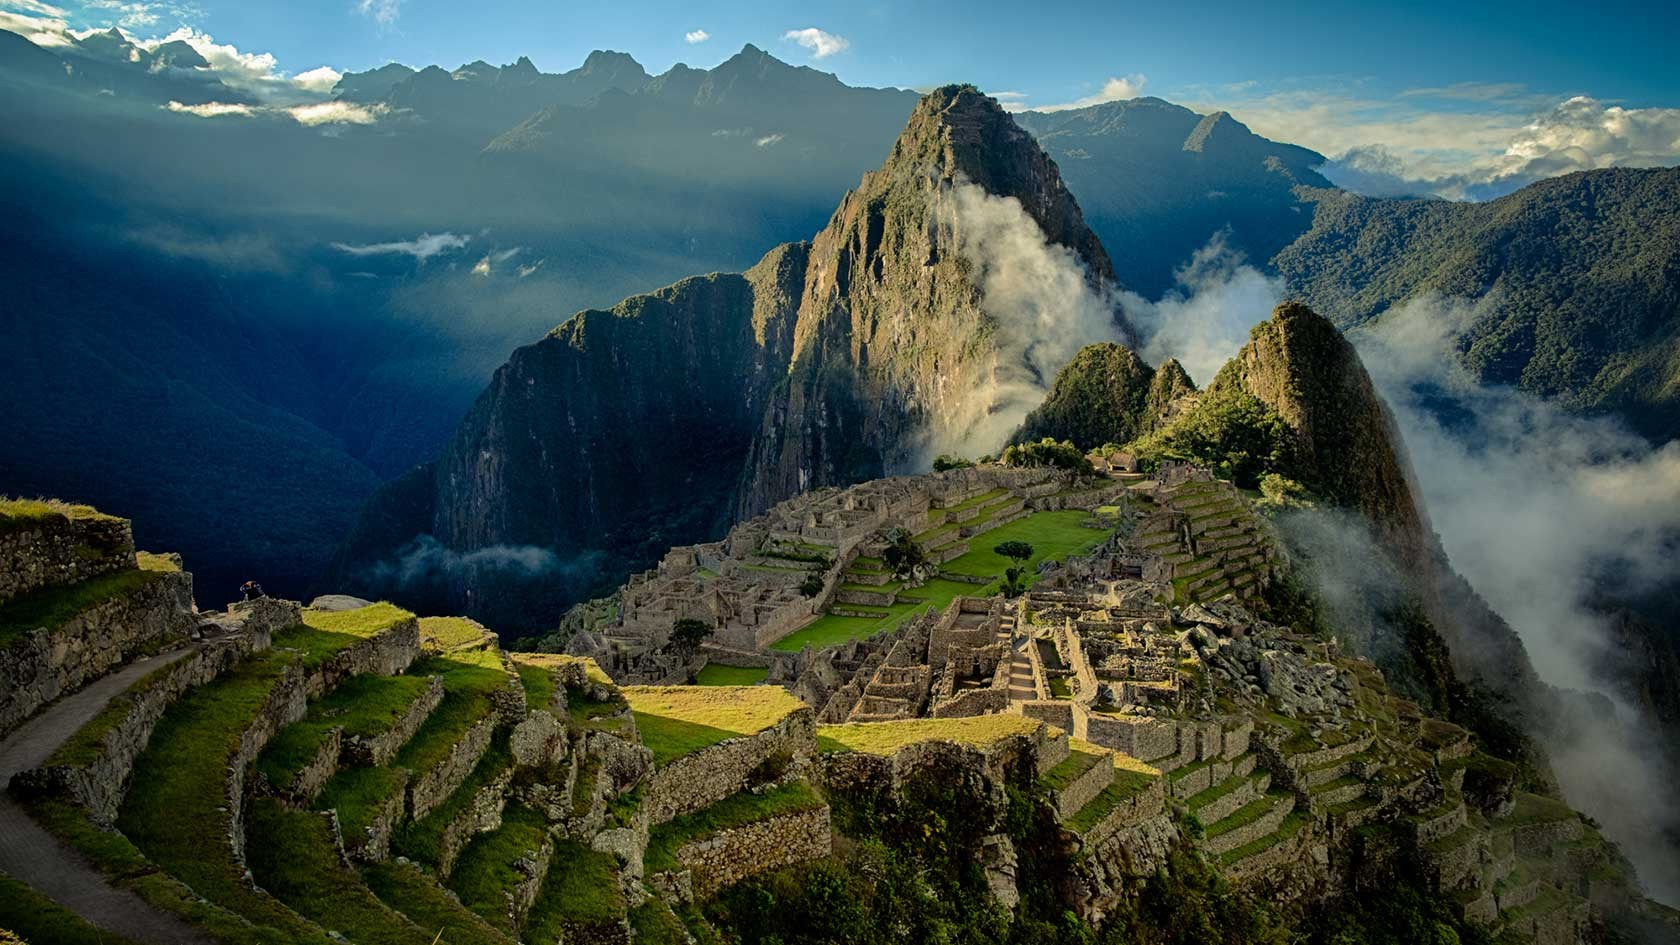 Machu Picchu Wallpapers (10 Wallpapers) – Adorable Wallpapers